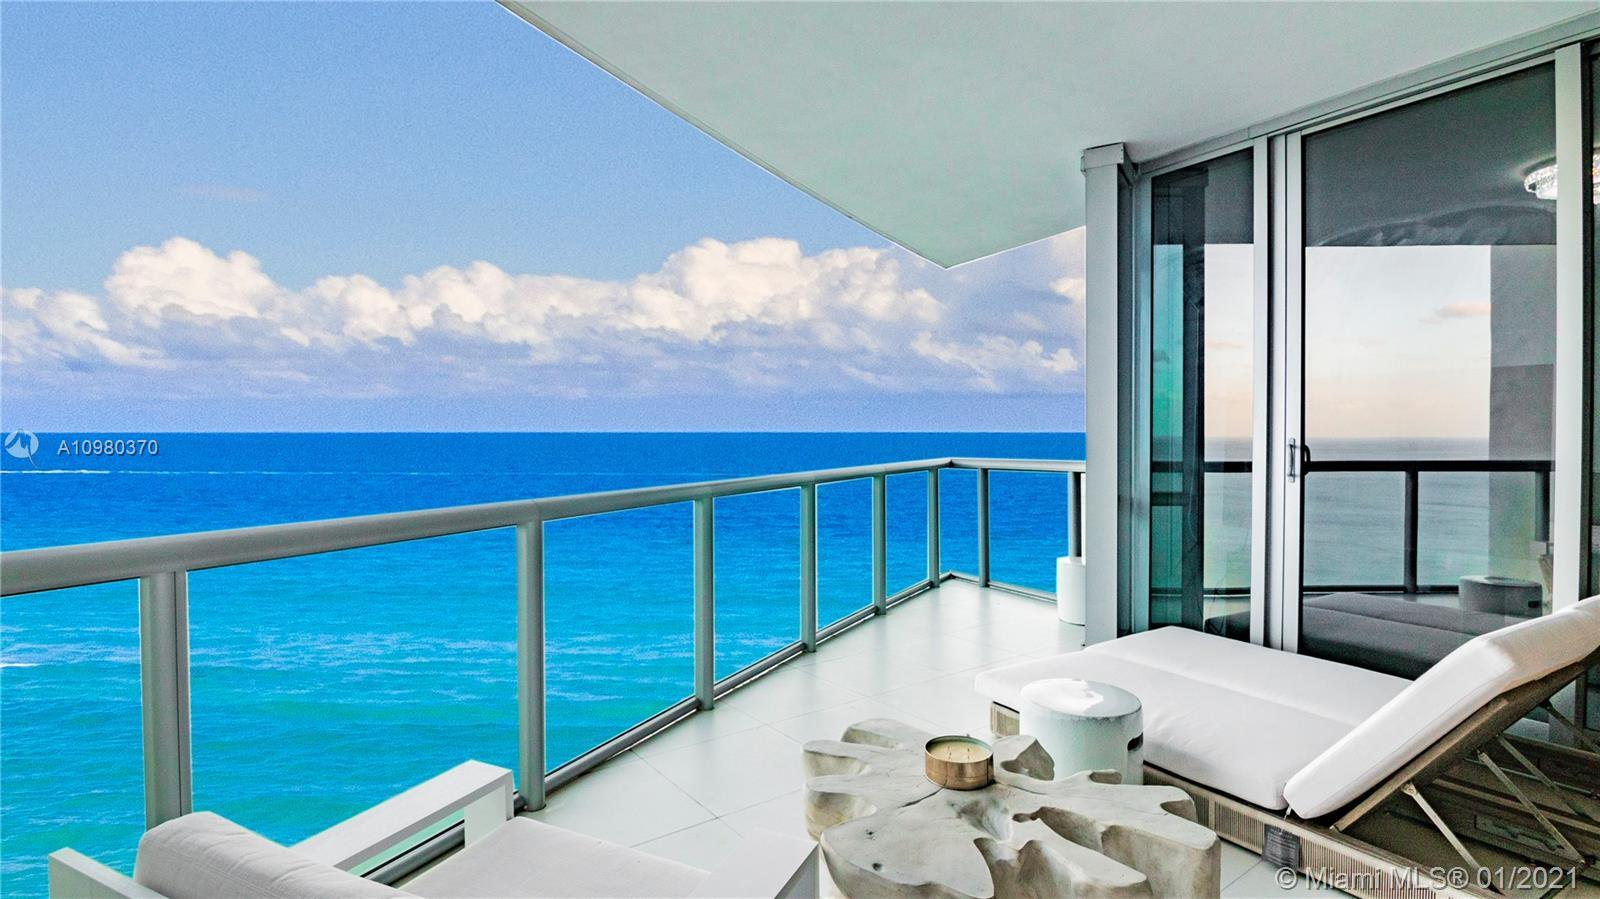 Stunning Residence in the Sky being offered as a luxury turn-key for the most exquisite clients, the